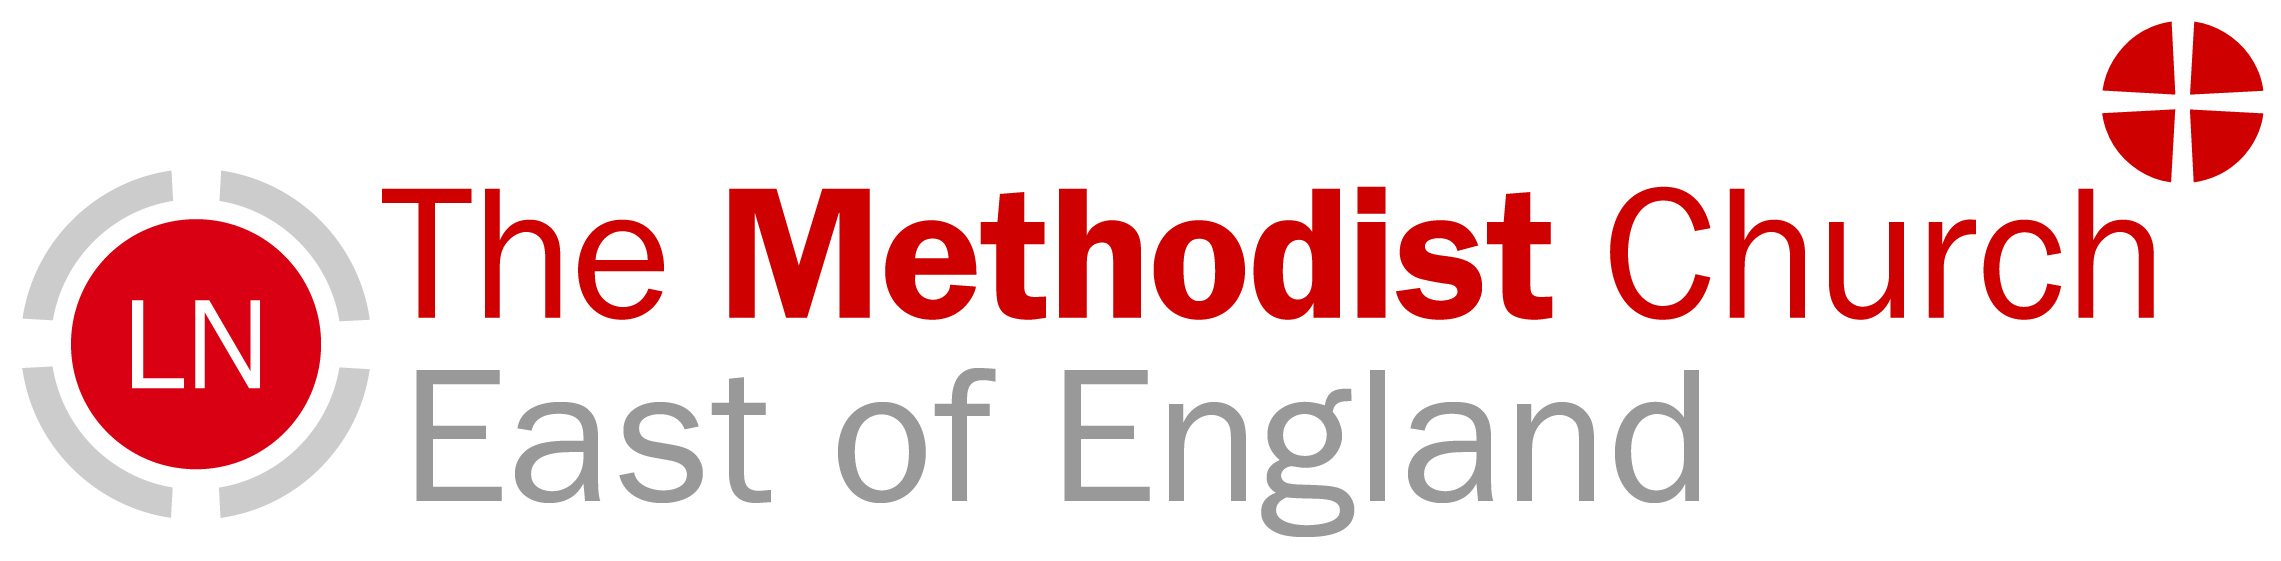 3115 Methodist Church LN logo